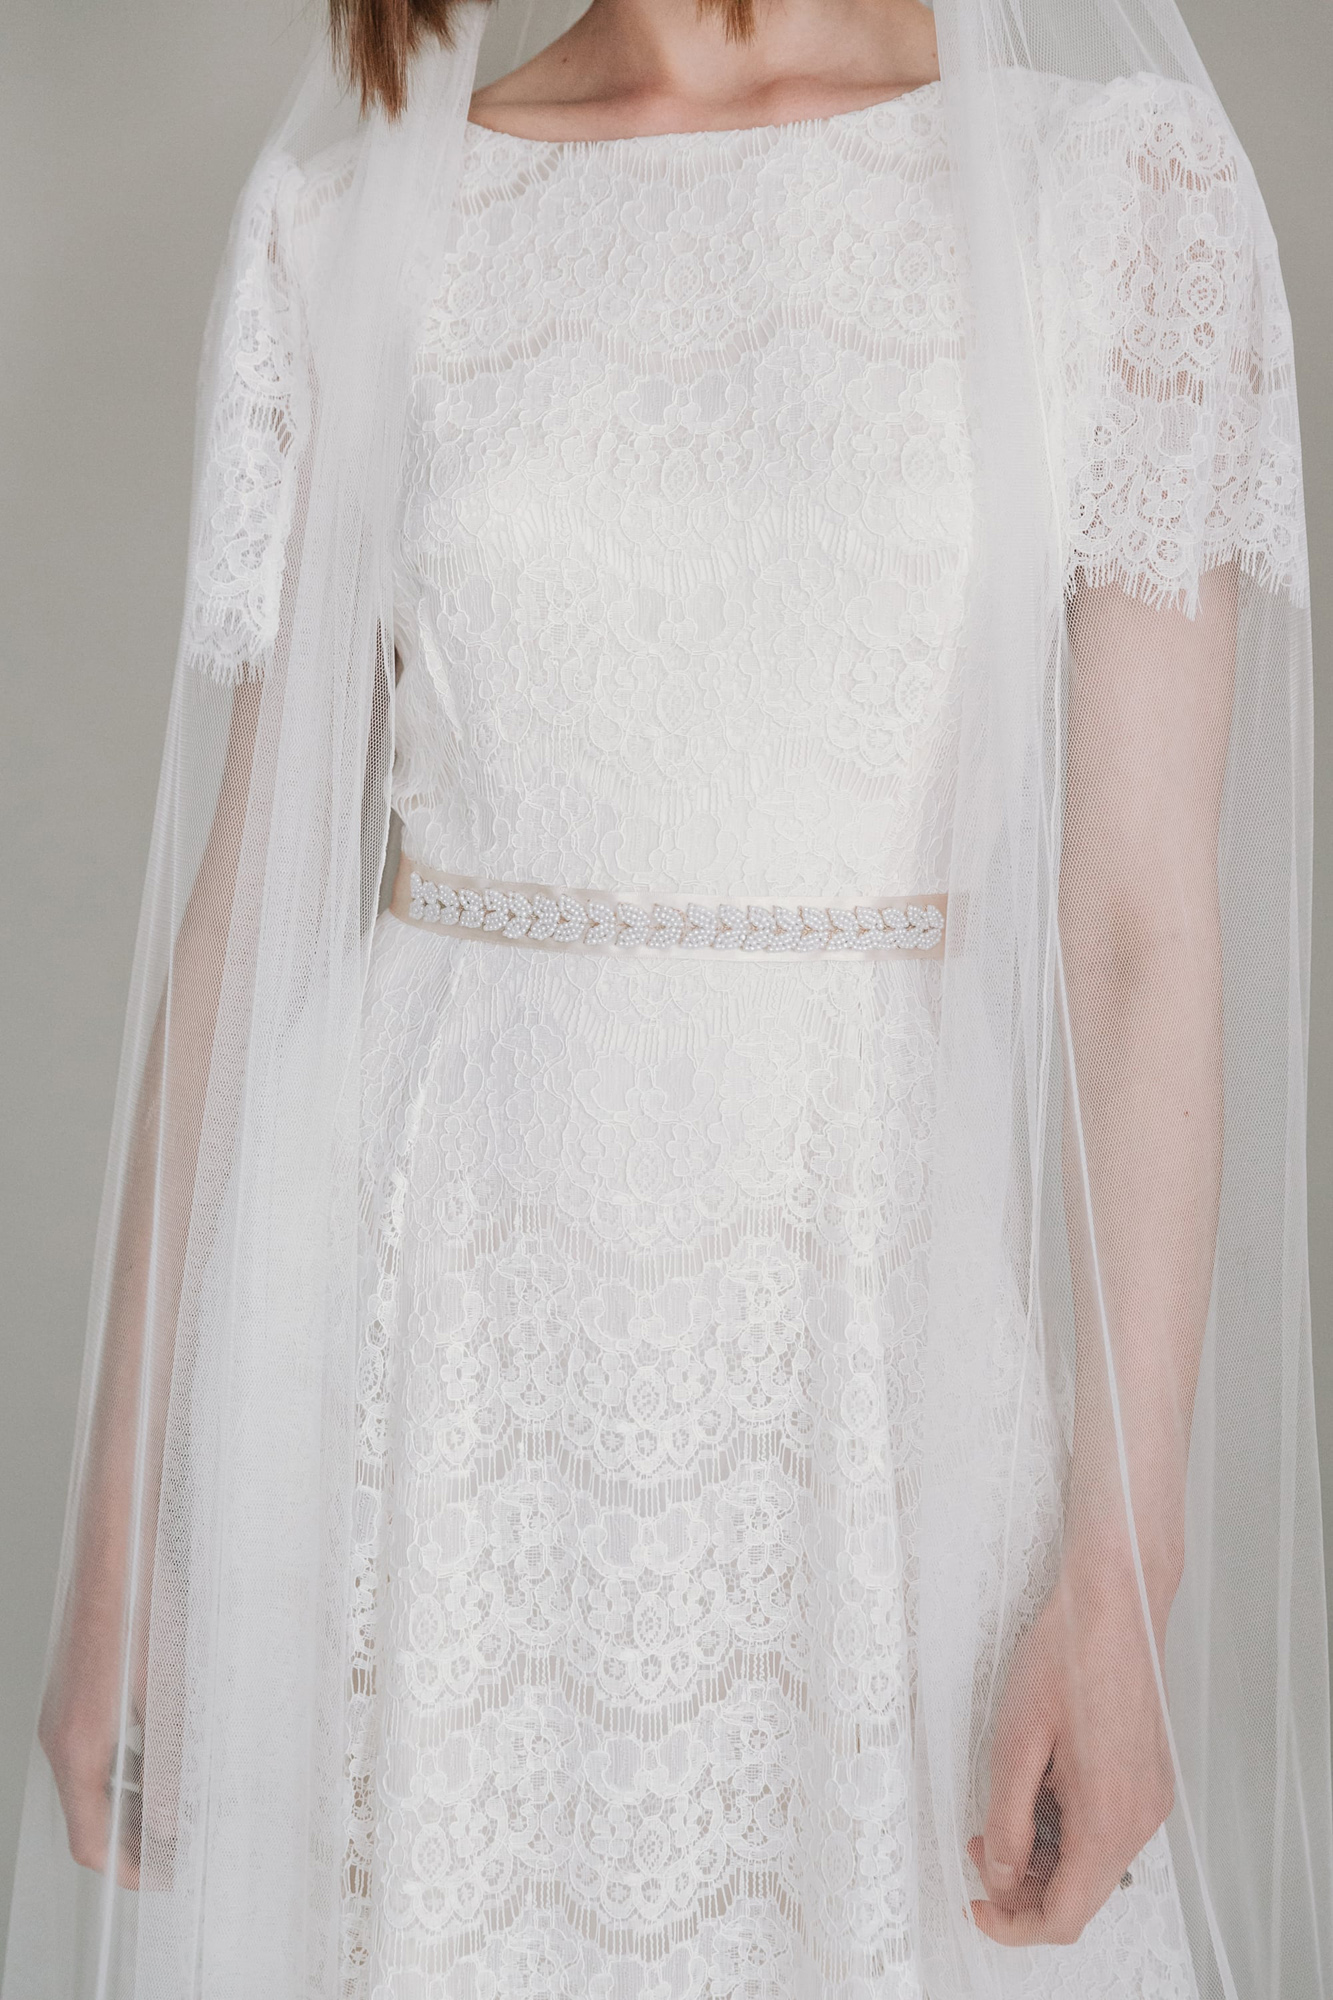 Kate-Beaumont-Sheffield-Bohemian-Dahlia-Panelled-Lace-Silk-Wedding-Gown-16.jpg